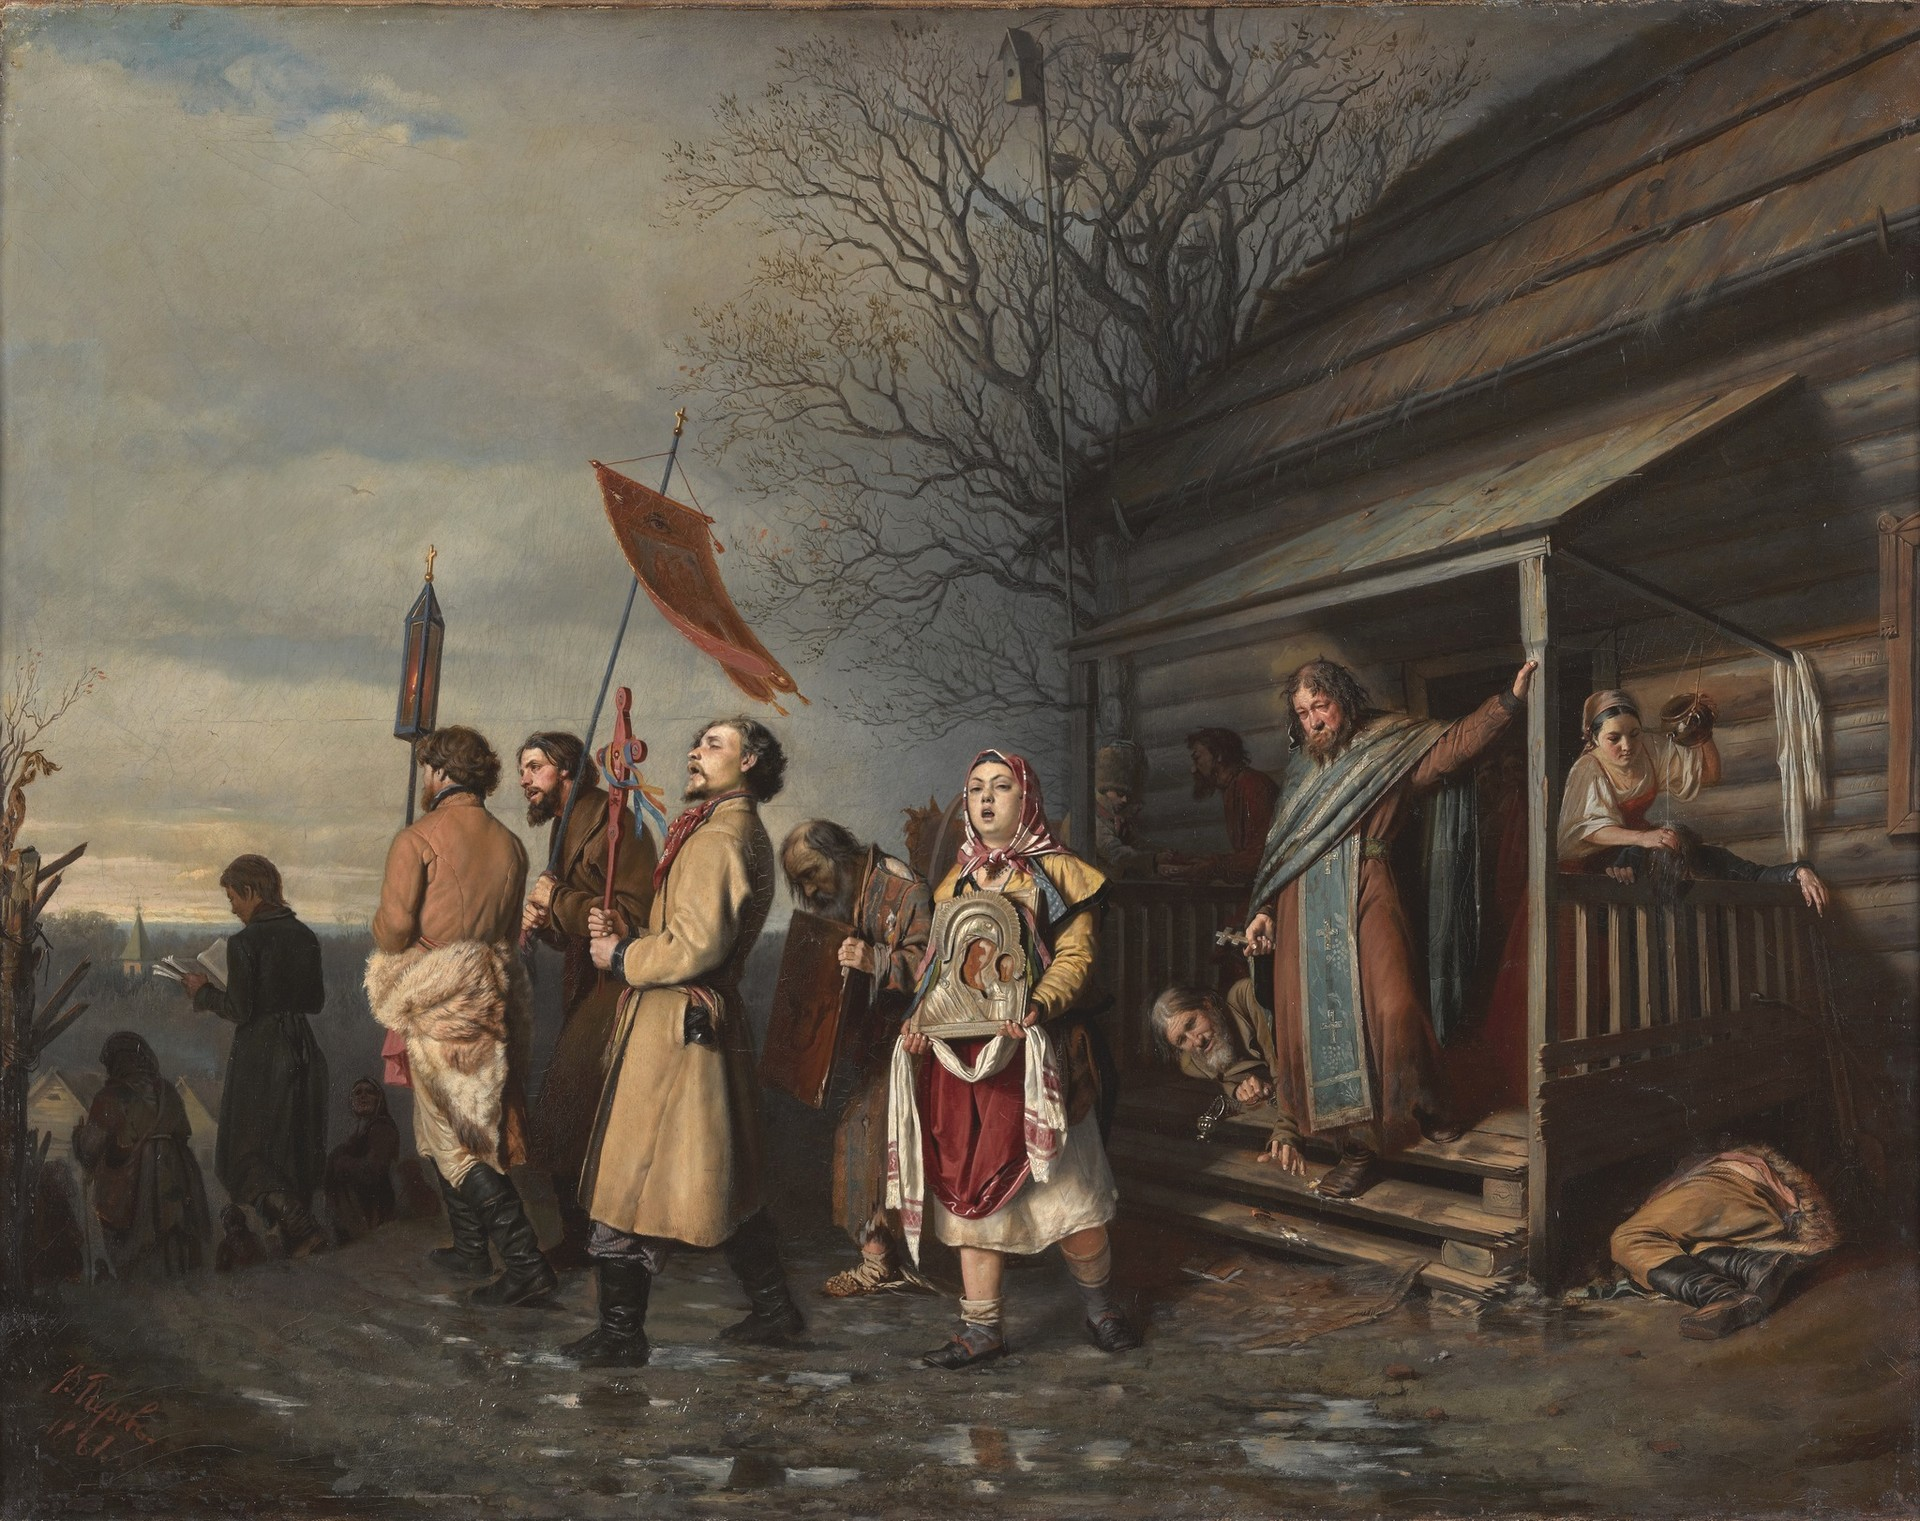 Vasily Perov. Easter Procession in a Village. 1861